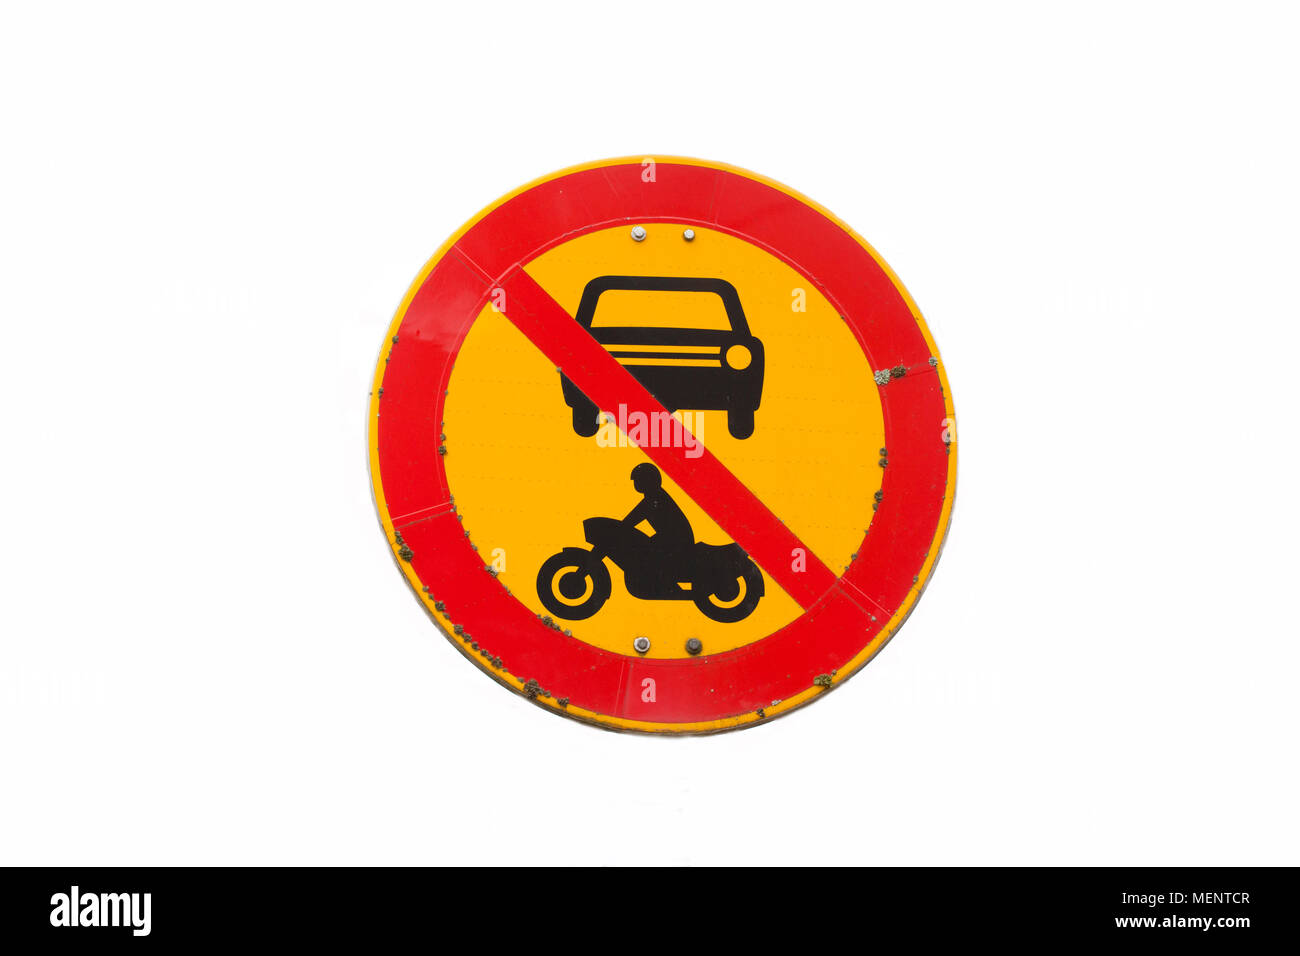 European round traffic sign, the passage of vehicles and motorcycles prohibited. Without pole. Isolated on white Stock Photo